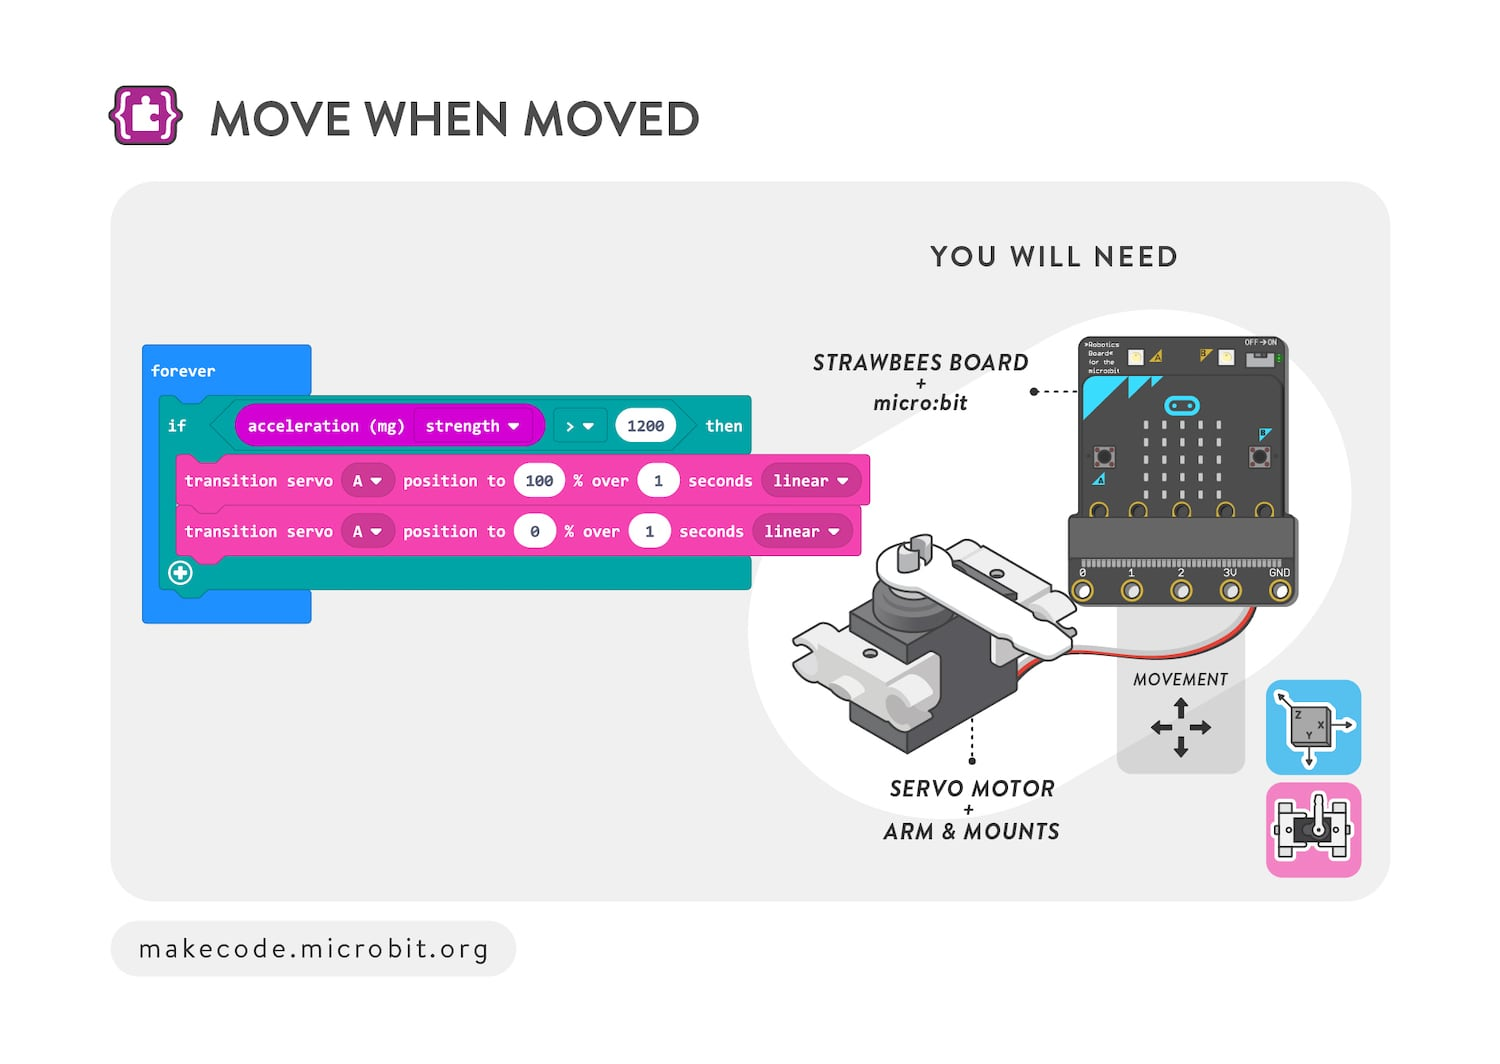 Move when moved